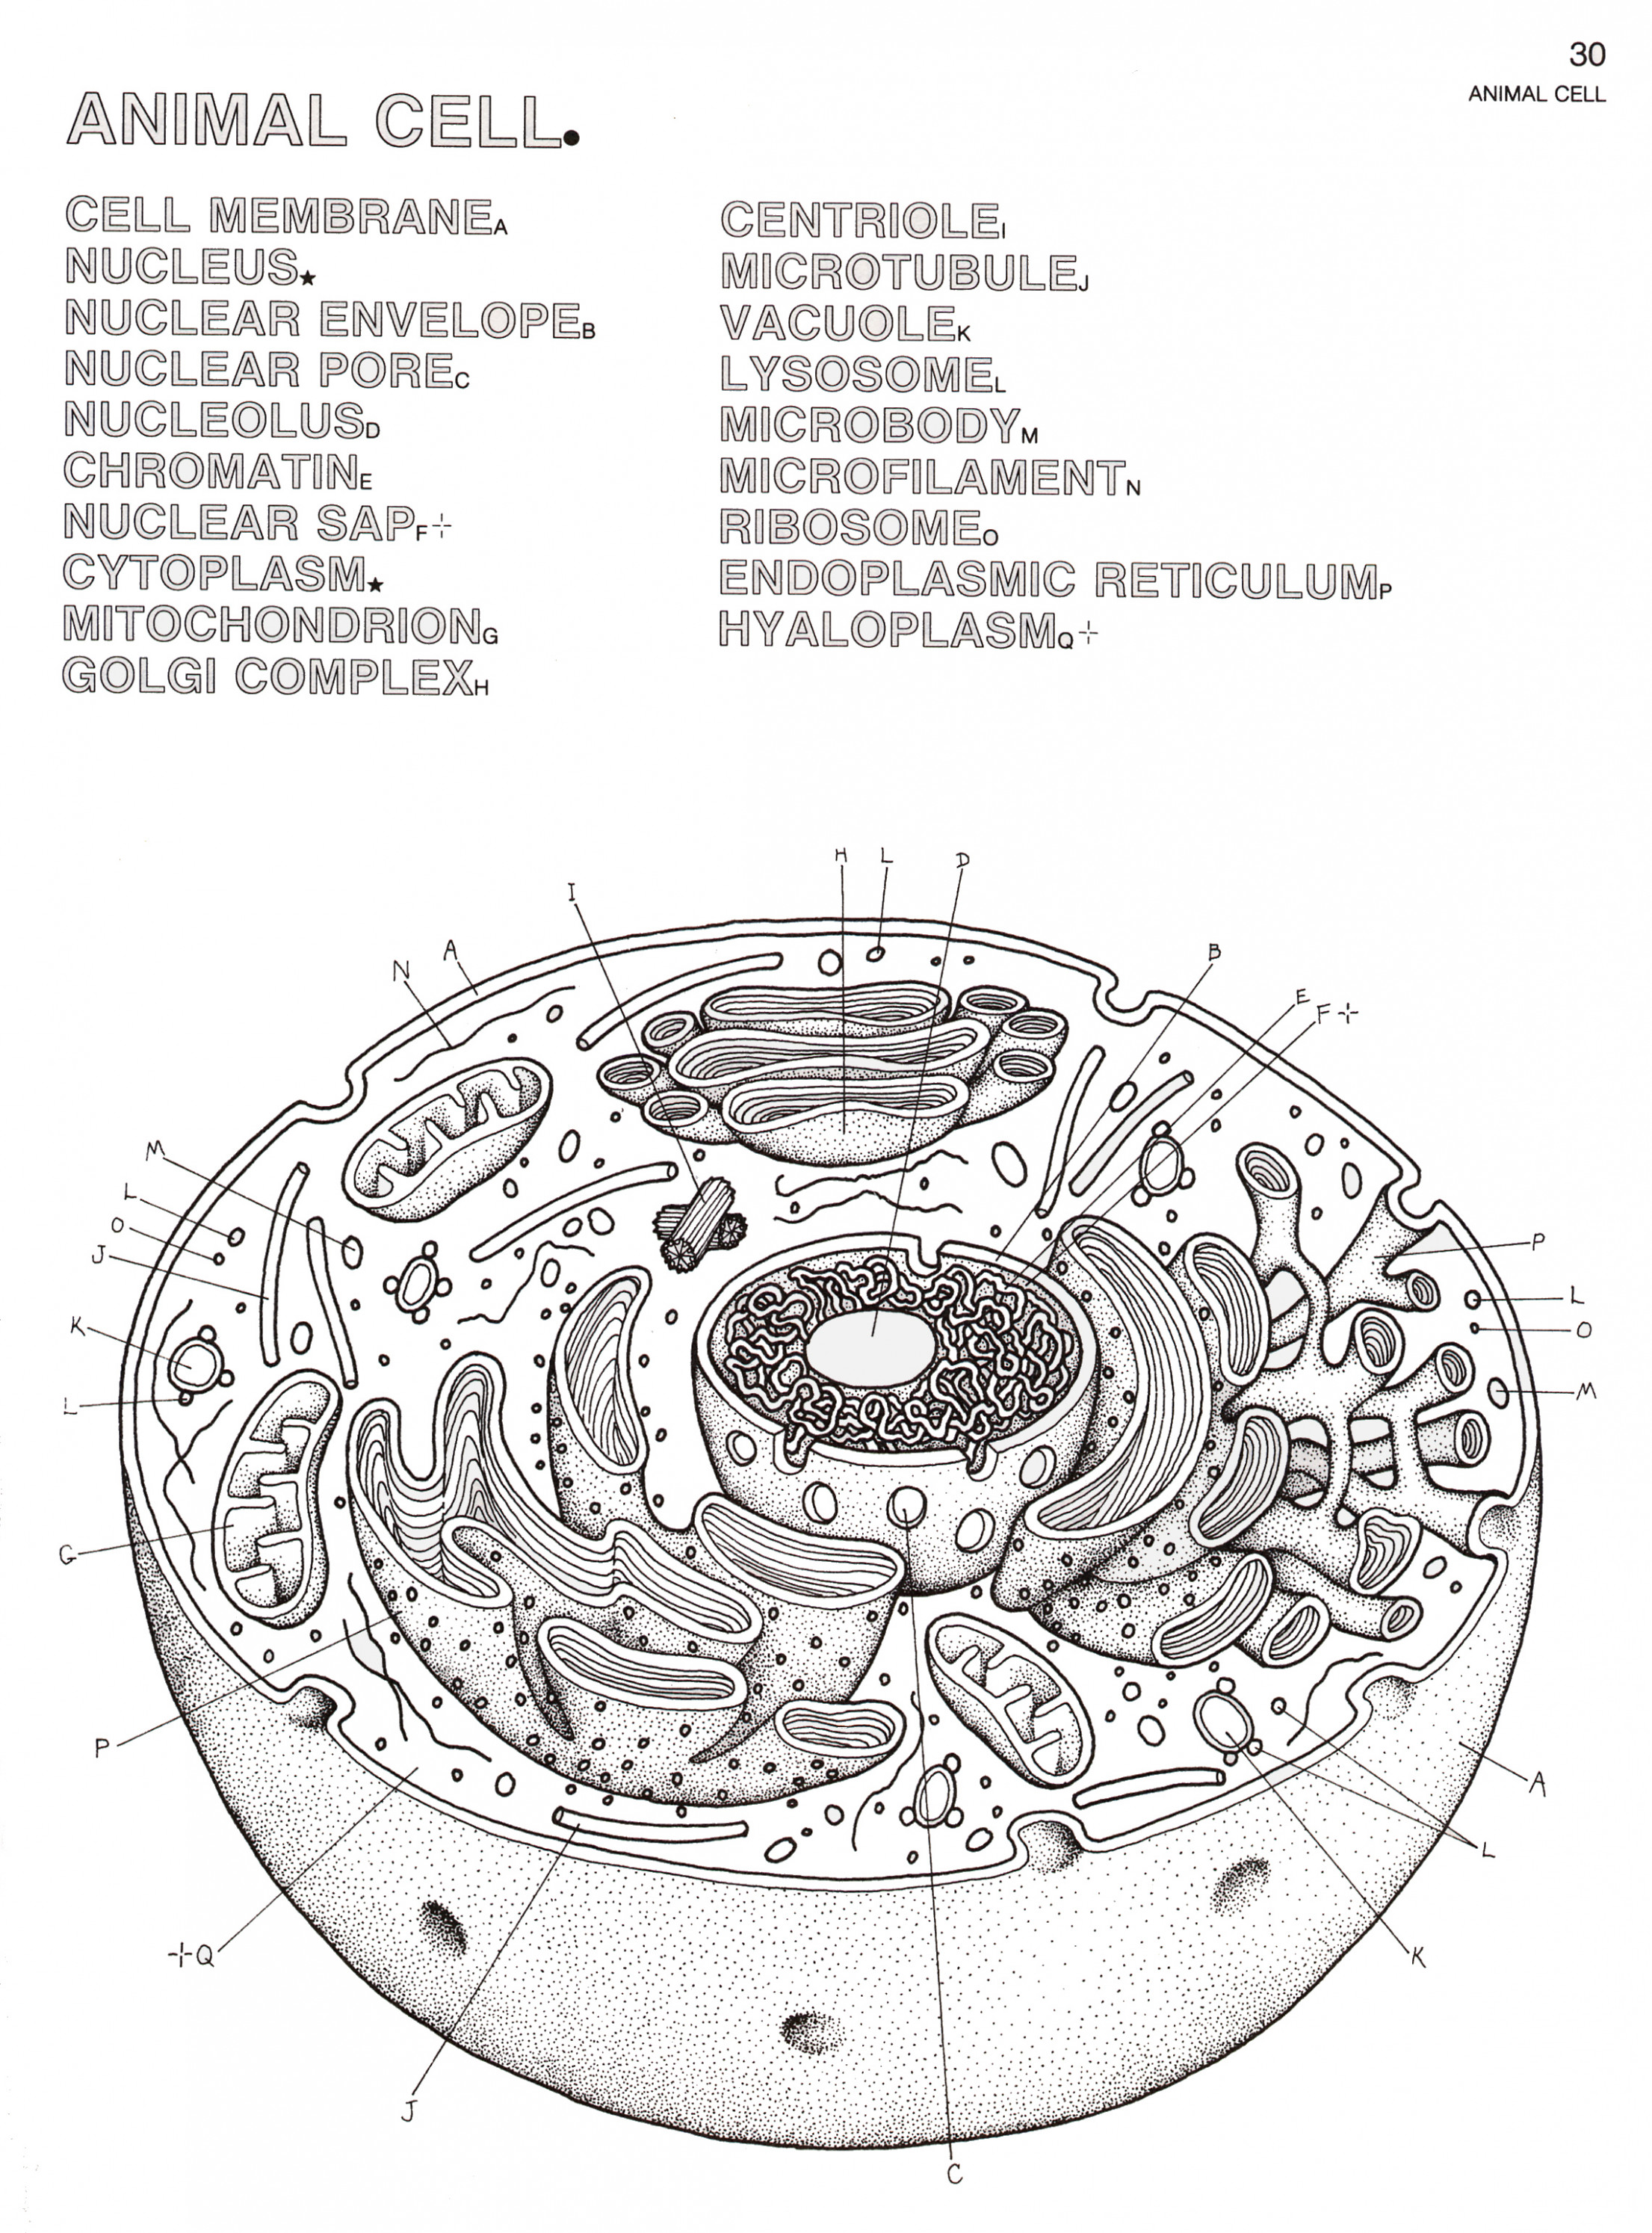 Coloring Pages. The Biology Coloring Book Pdf - Liandola.com